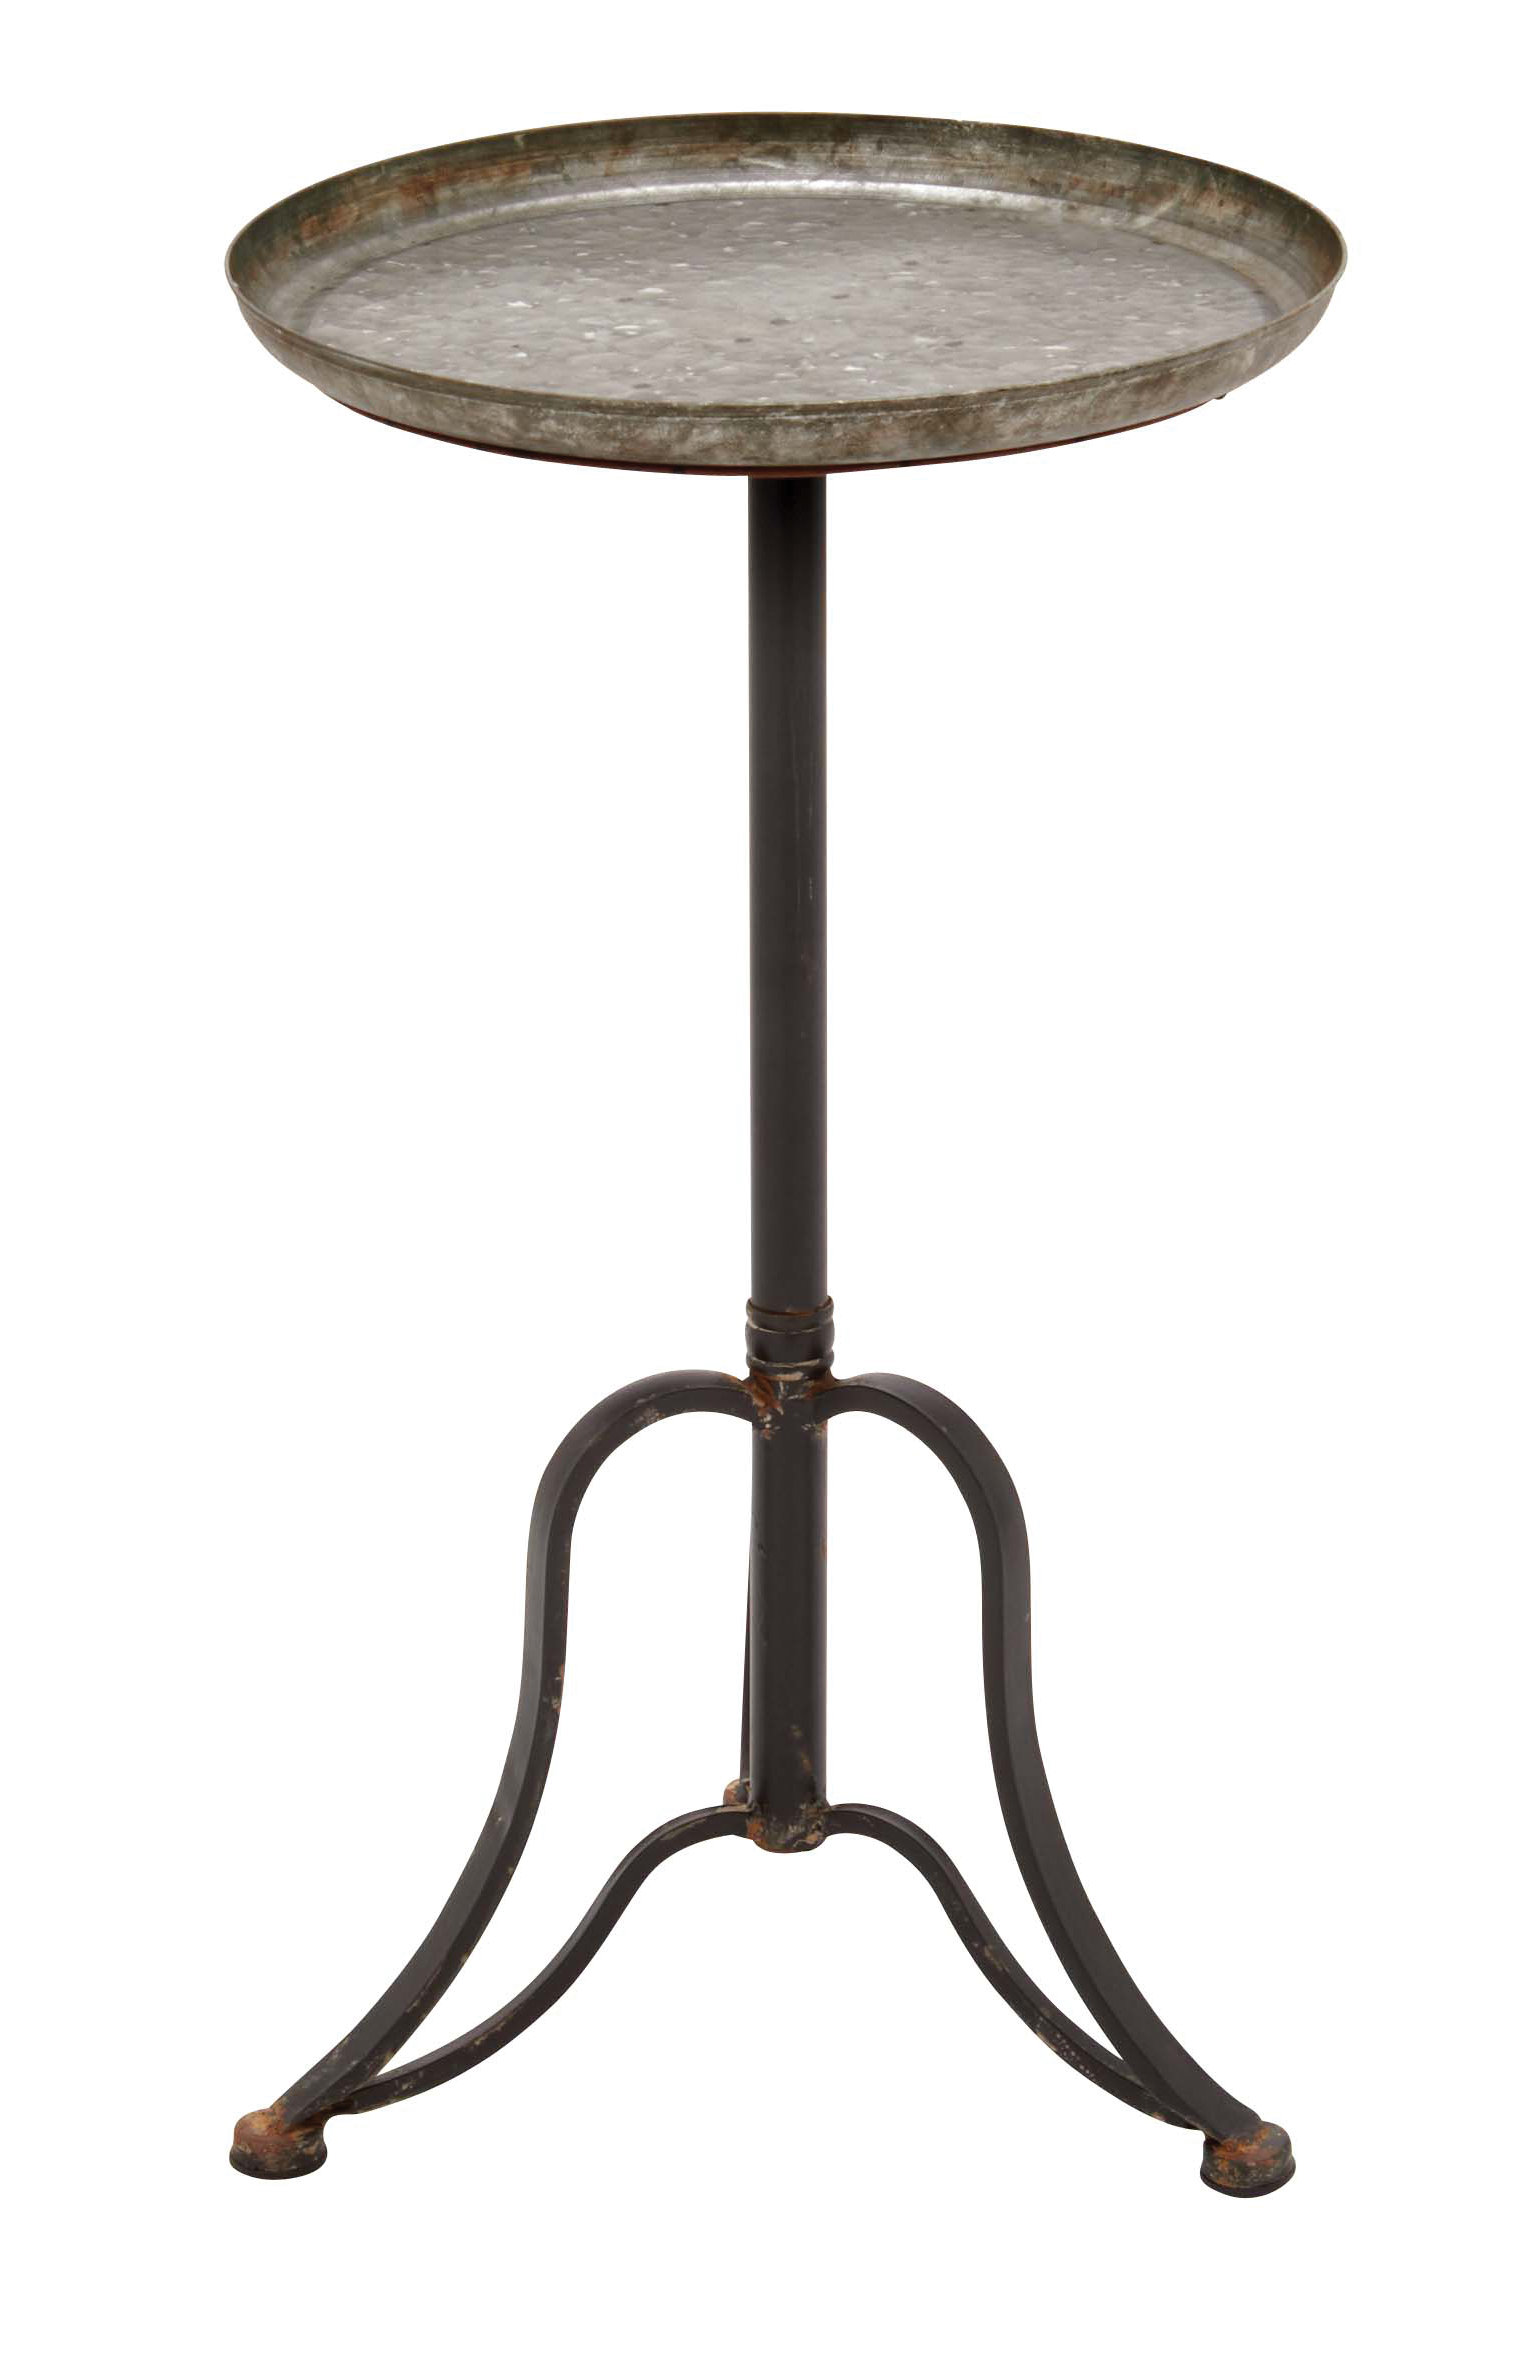 fabulous metal end table tenpojin pearl knurl nesting accent tables small console with storage verizon ellipsis round coffee stools unique outdoor patio mirrored elm side acrylic